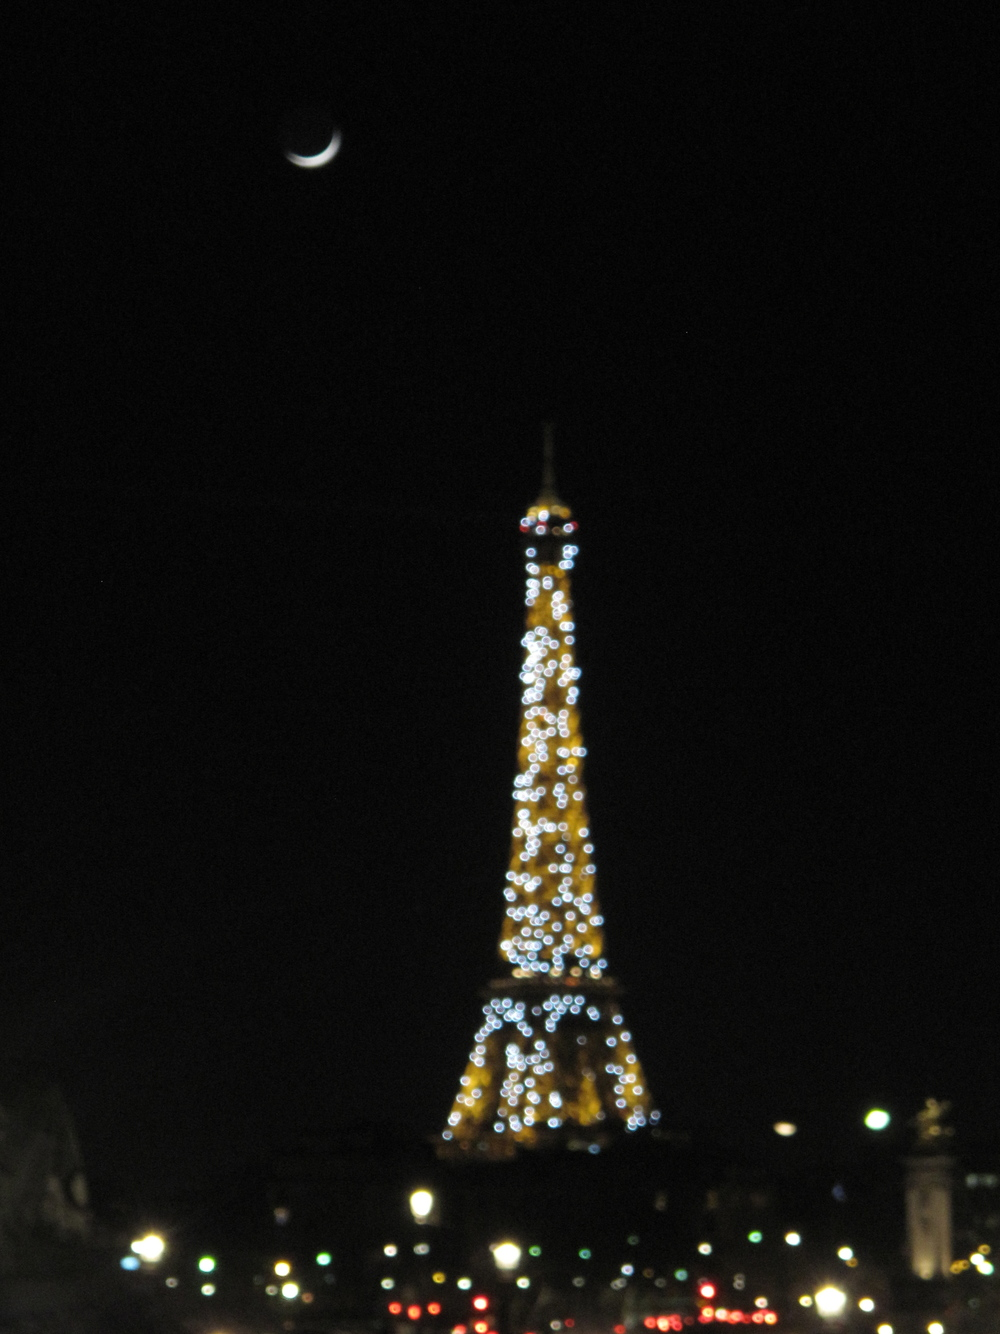 The Eiffel Tower sparkling at night under a crescent moon - blurry shot and bokeh